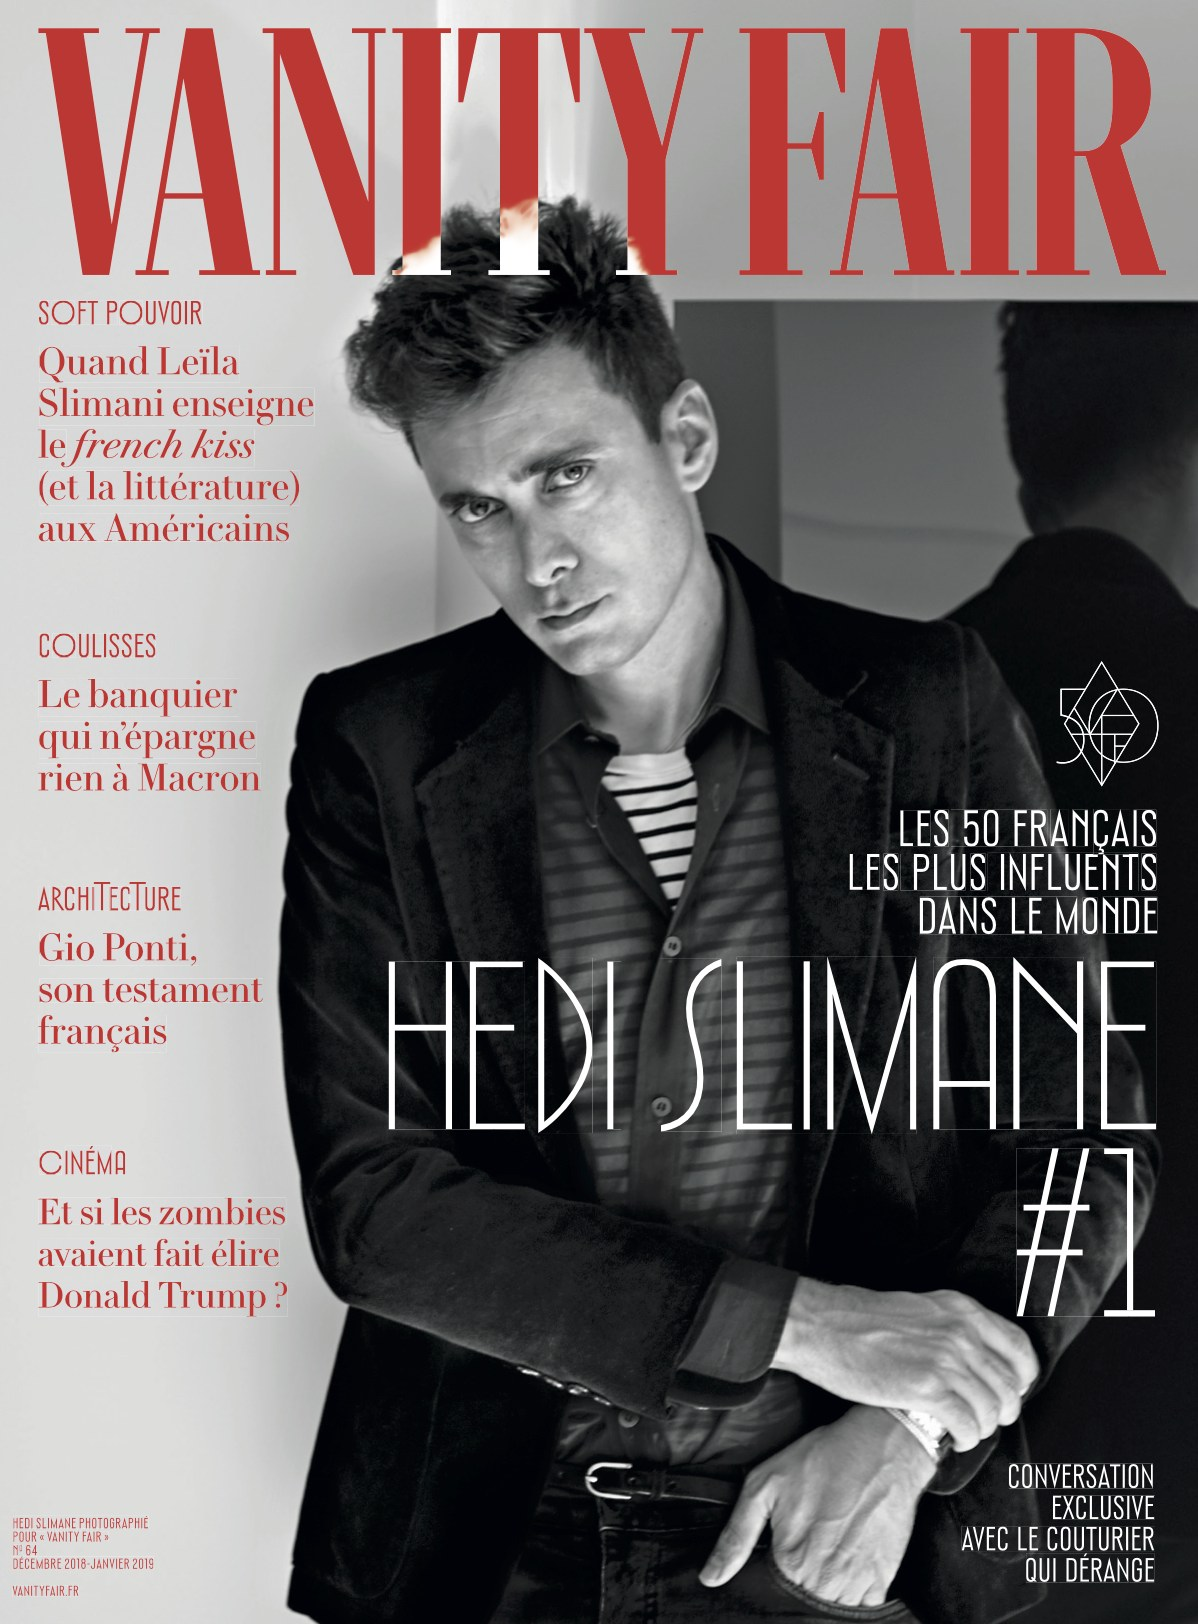 Hedi Slimane on the cover of the december issue of Vanity Fair France